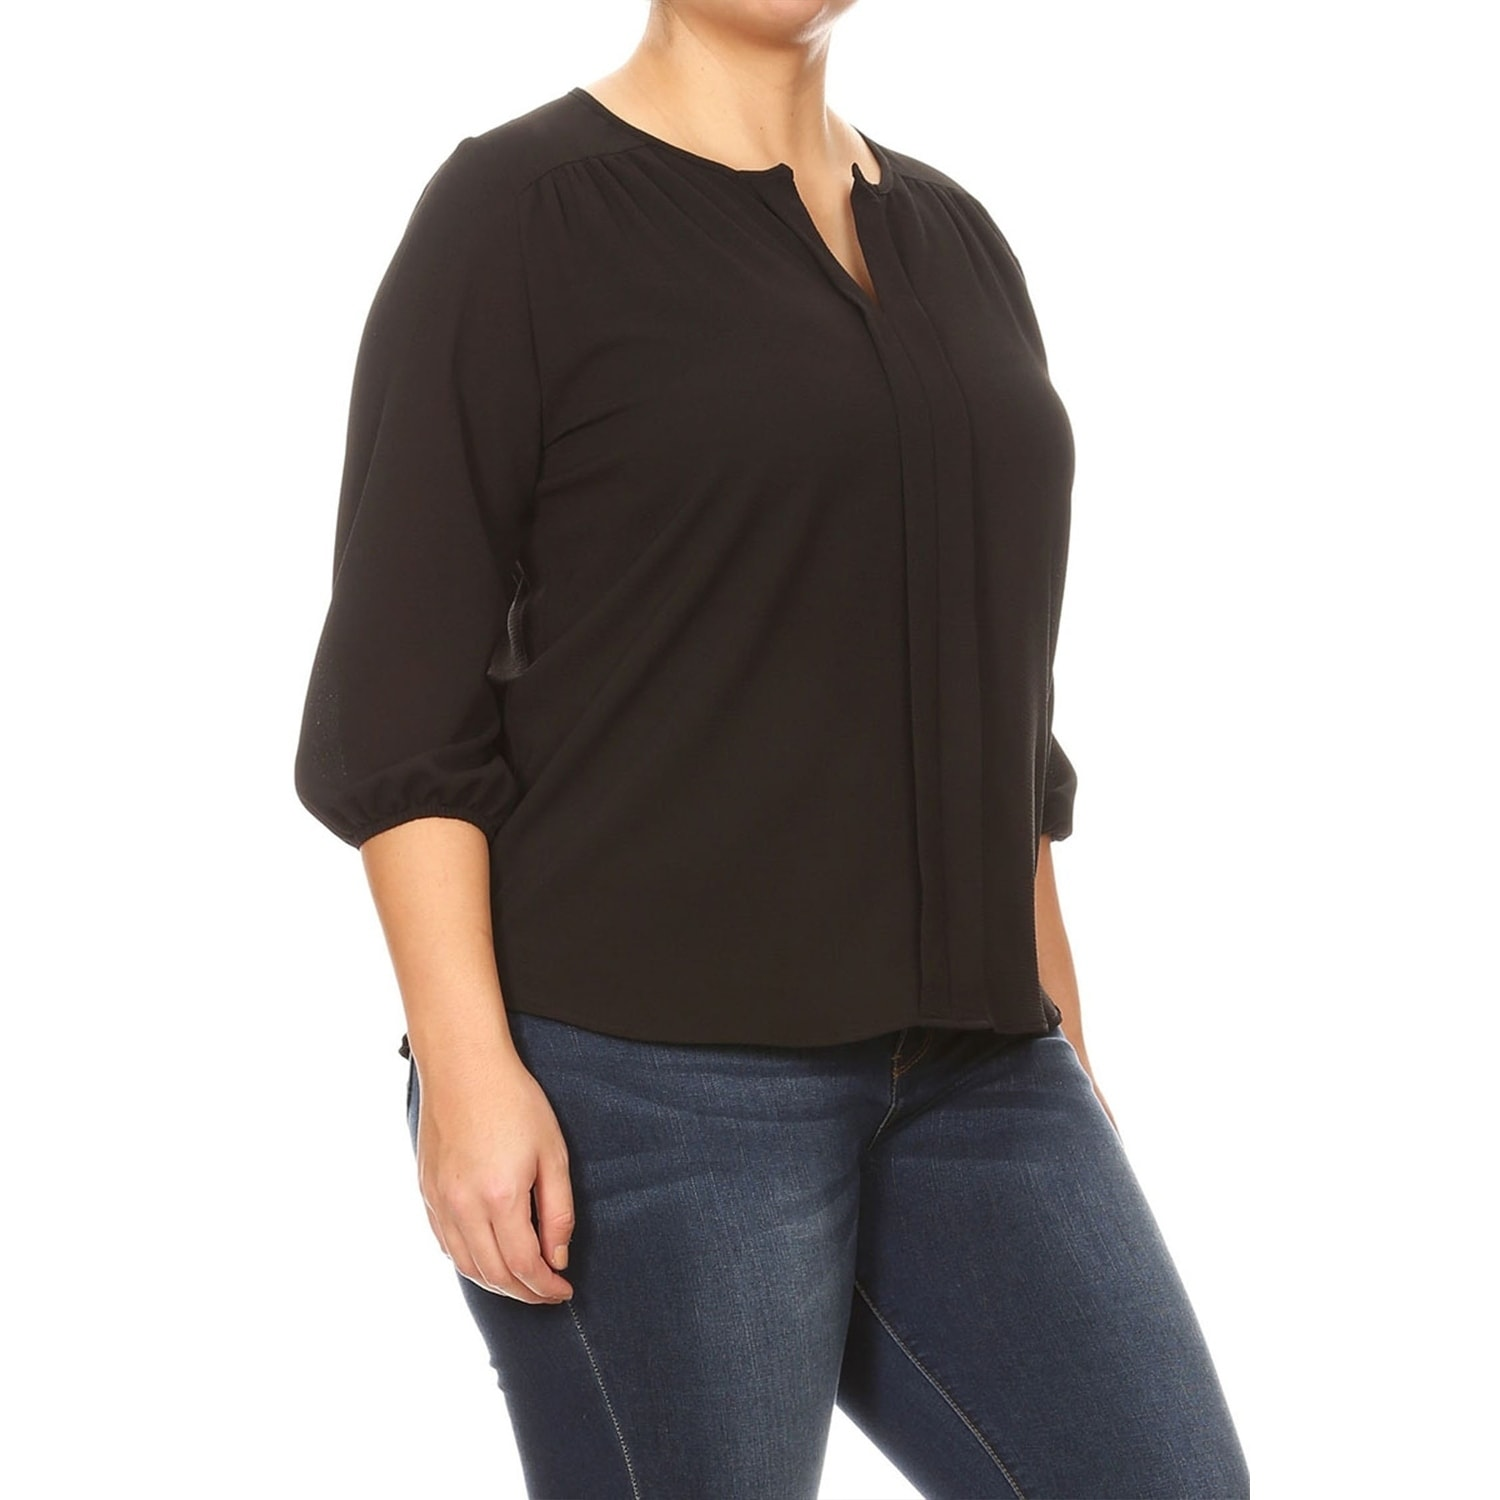 8c48f43e276 Shop Women s Plus Size Solid Casual Lightweight 3 4 Bishop Sleeve Split  Neck Tunic Top Blouse - Free Shipping On Orders Over  45 - Overstock.com -  27095505